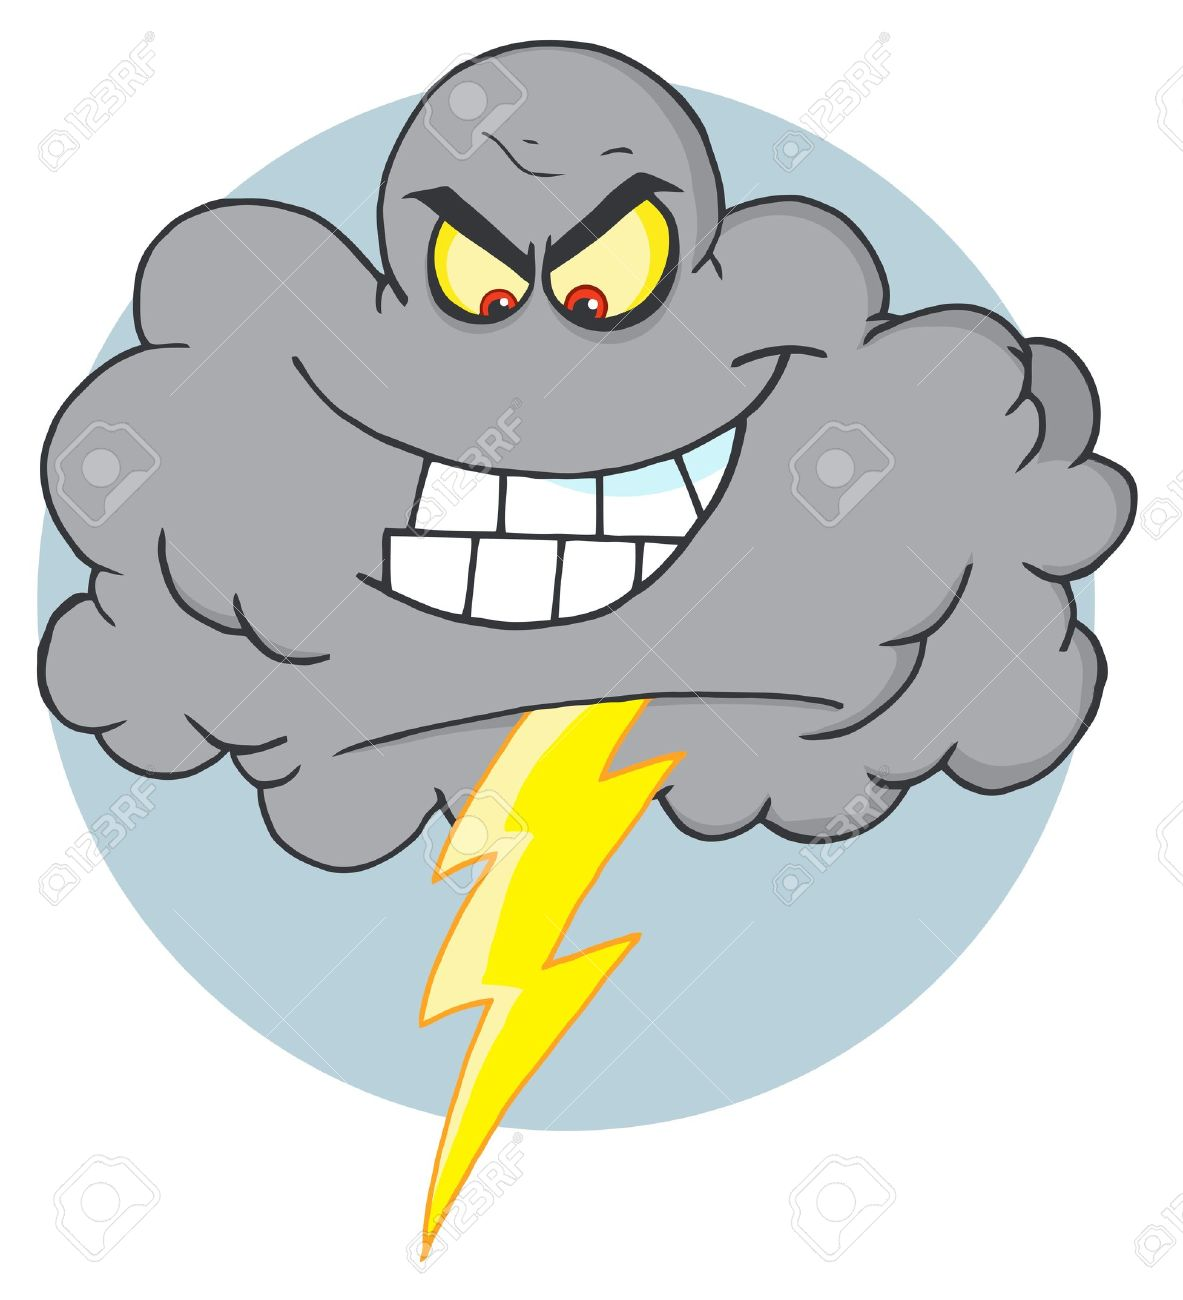 evil storm cloud with thunderbolt royalty free cliparts vectors rh 123rf com Snow Cloud Clip Art Snow Cloud Clip Art